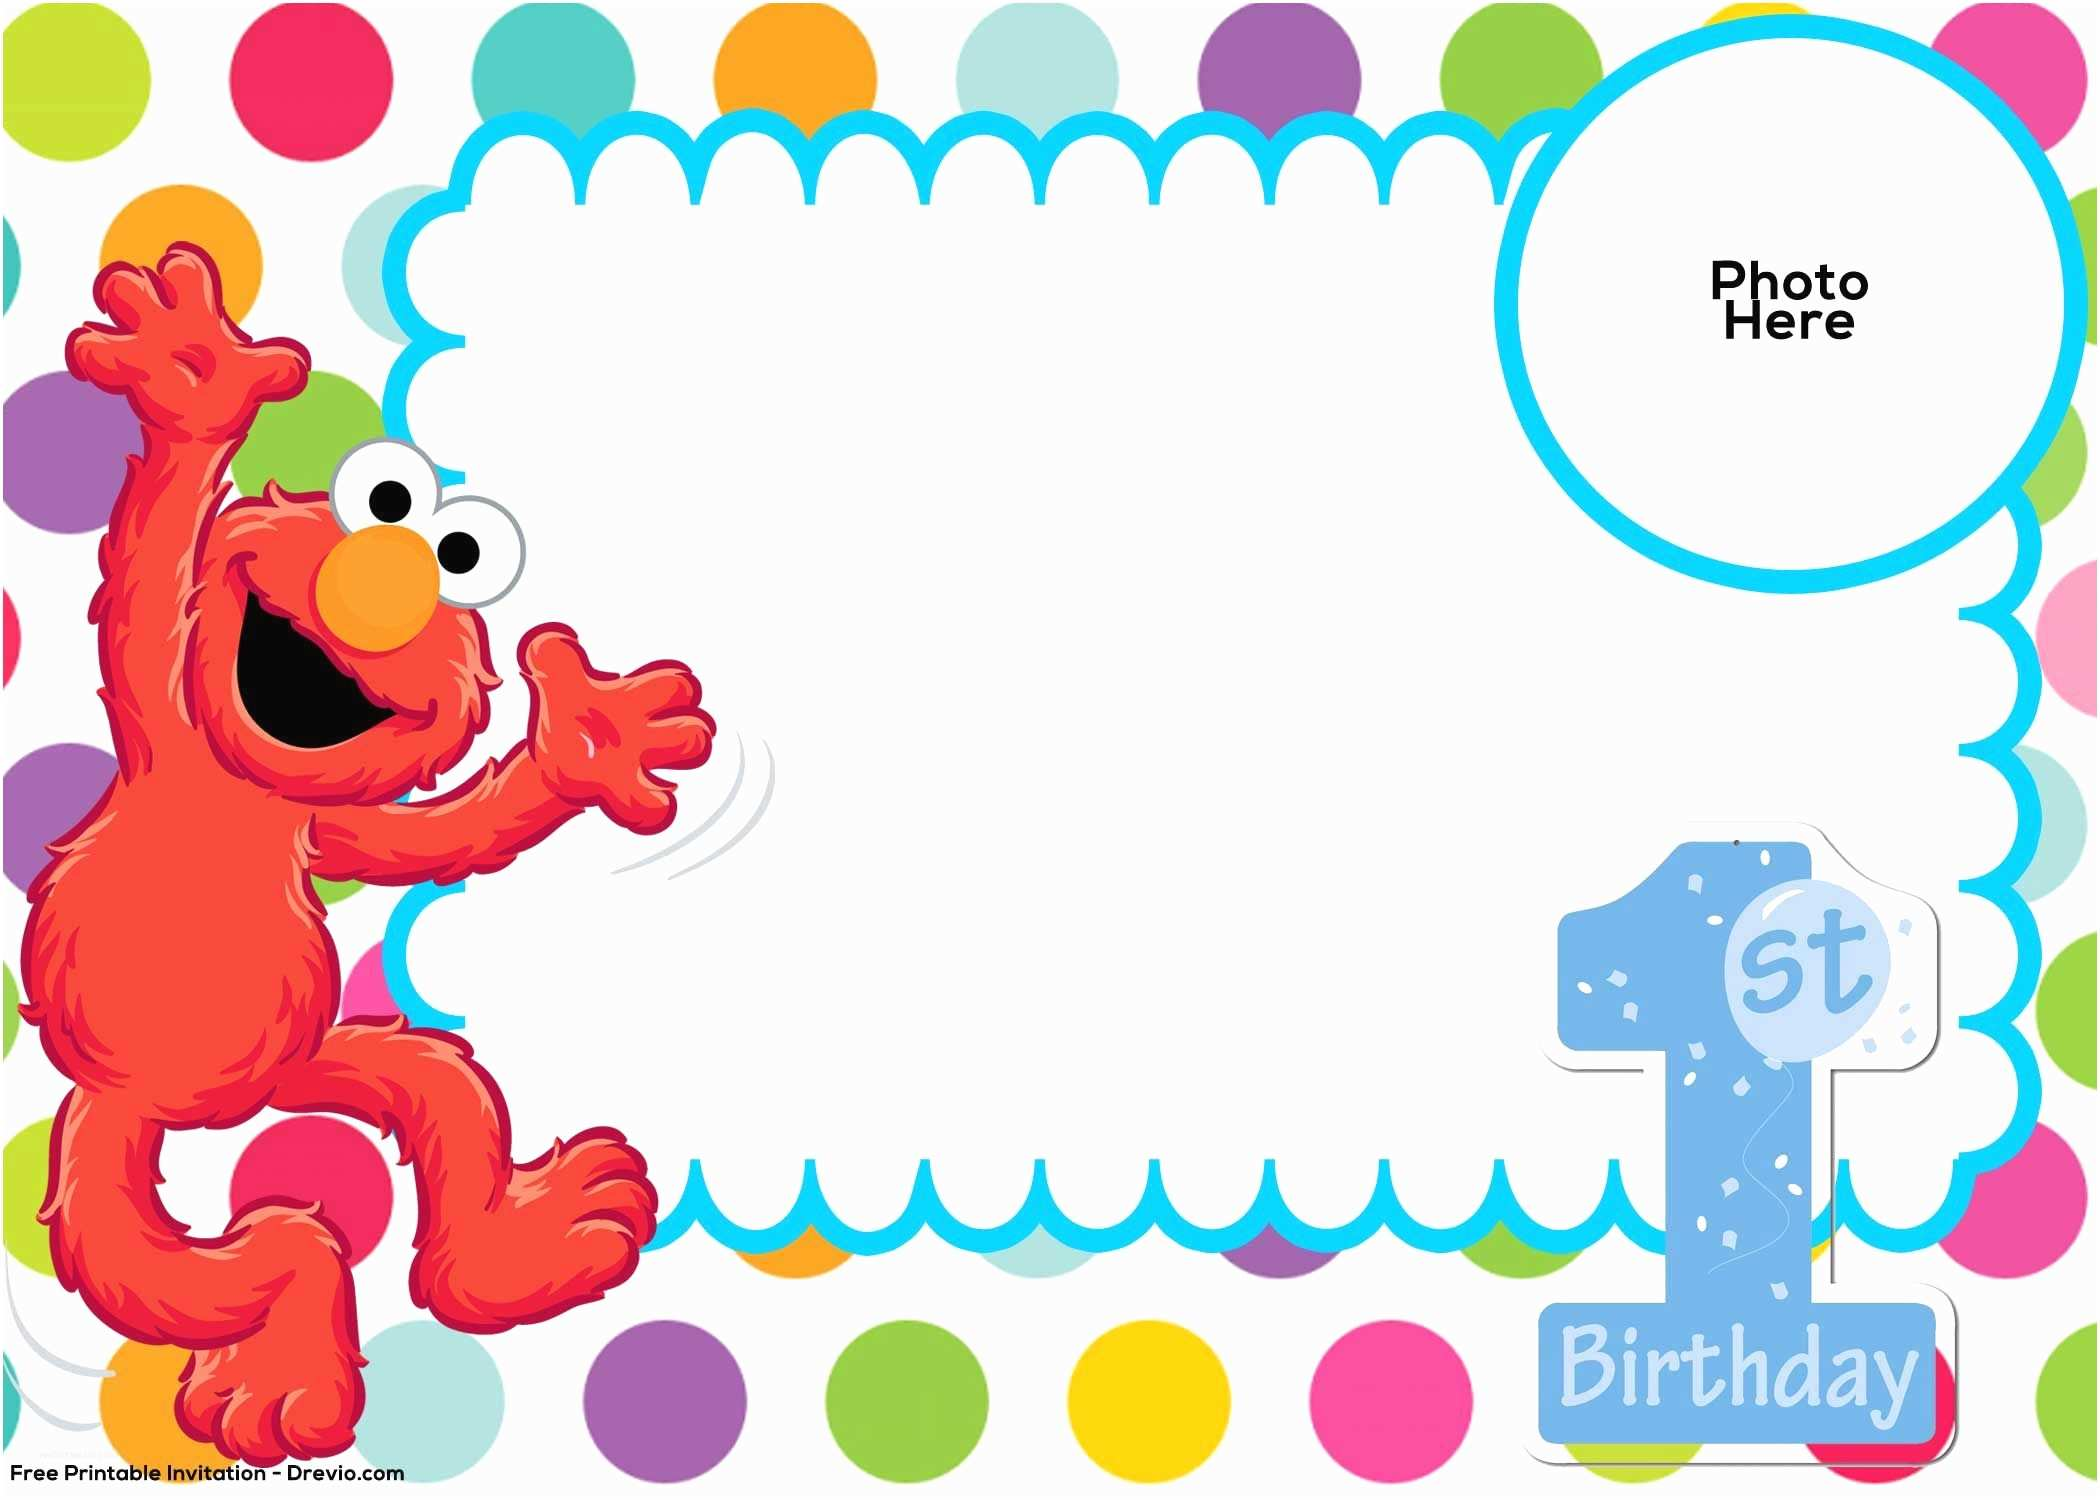 Elmo Birthday Party Invitations Free Sesame Street 1st Birthday Invitation Template